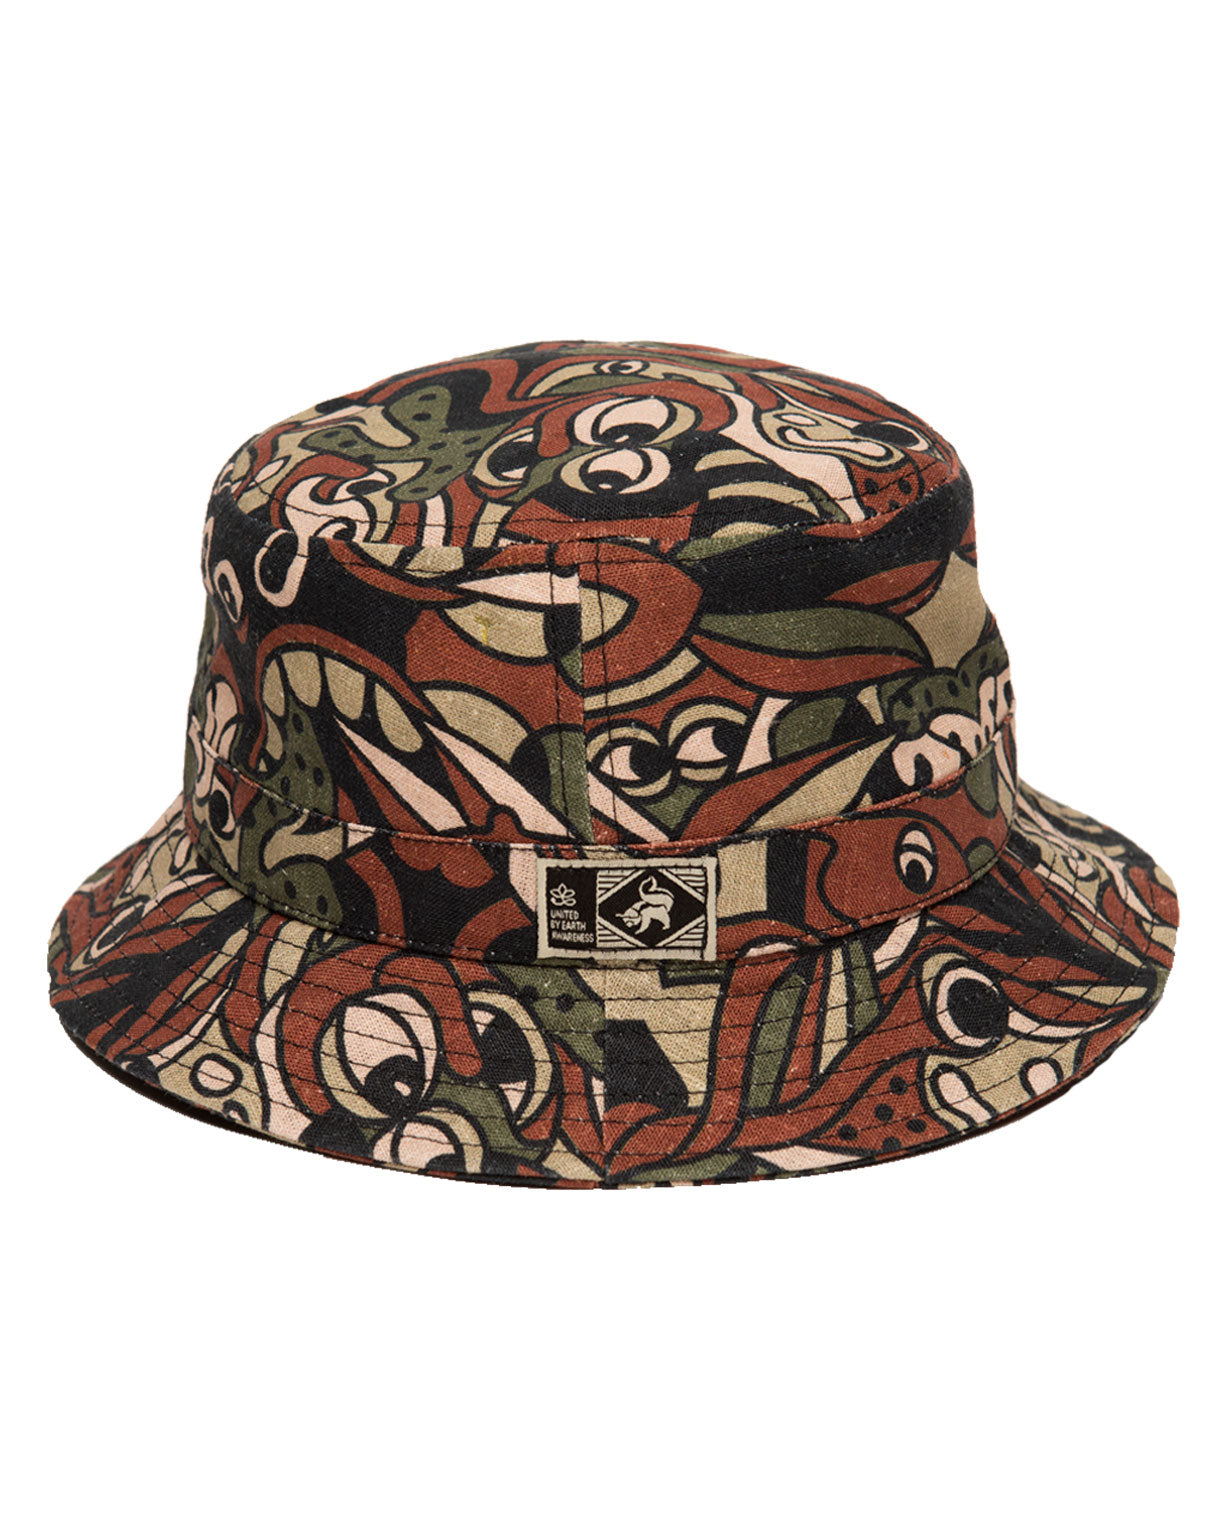 Camo Mood - Hemp Bucket